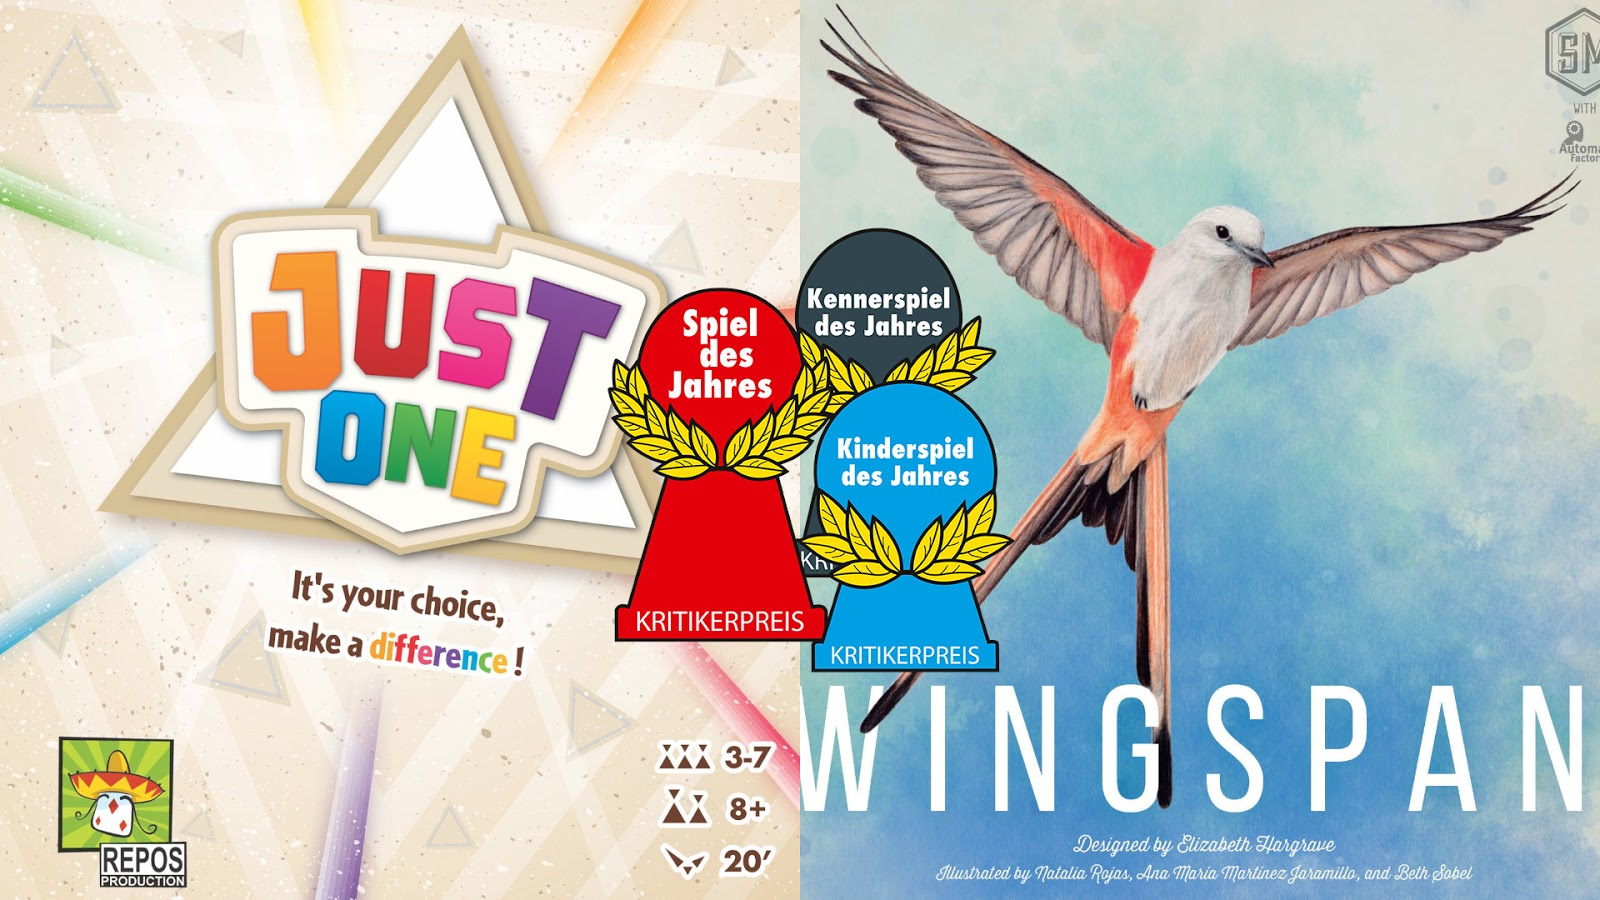 News Collider - Spiel de Jahres Winners Just One Wingspan